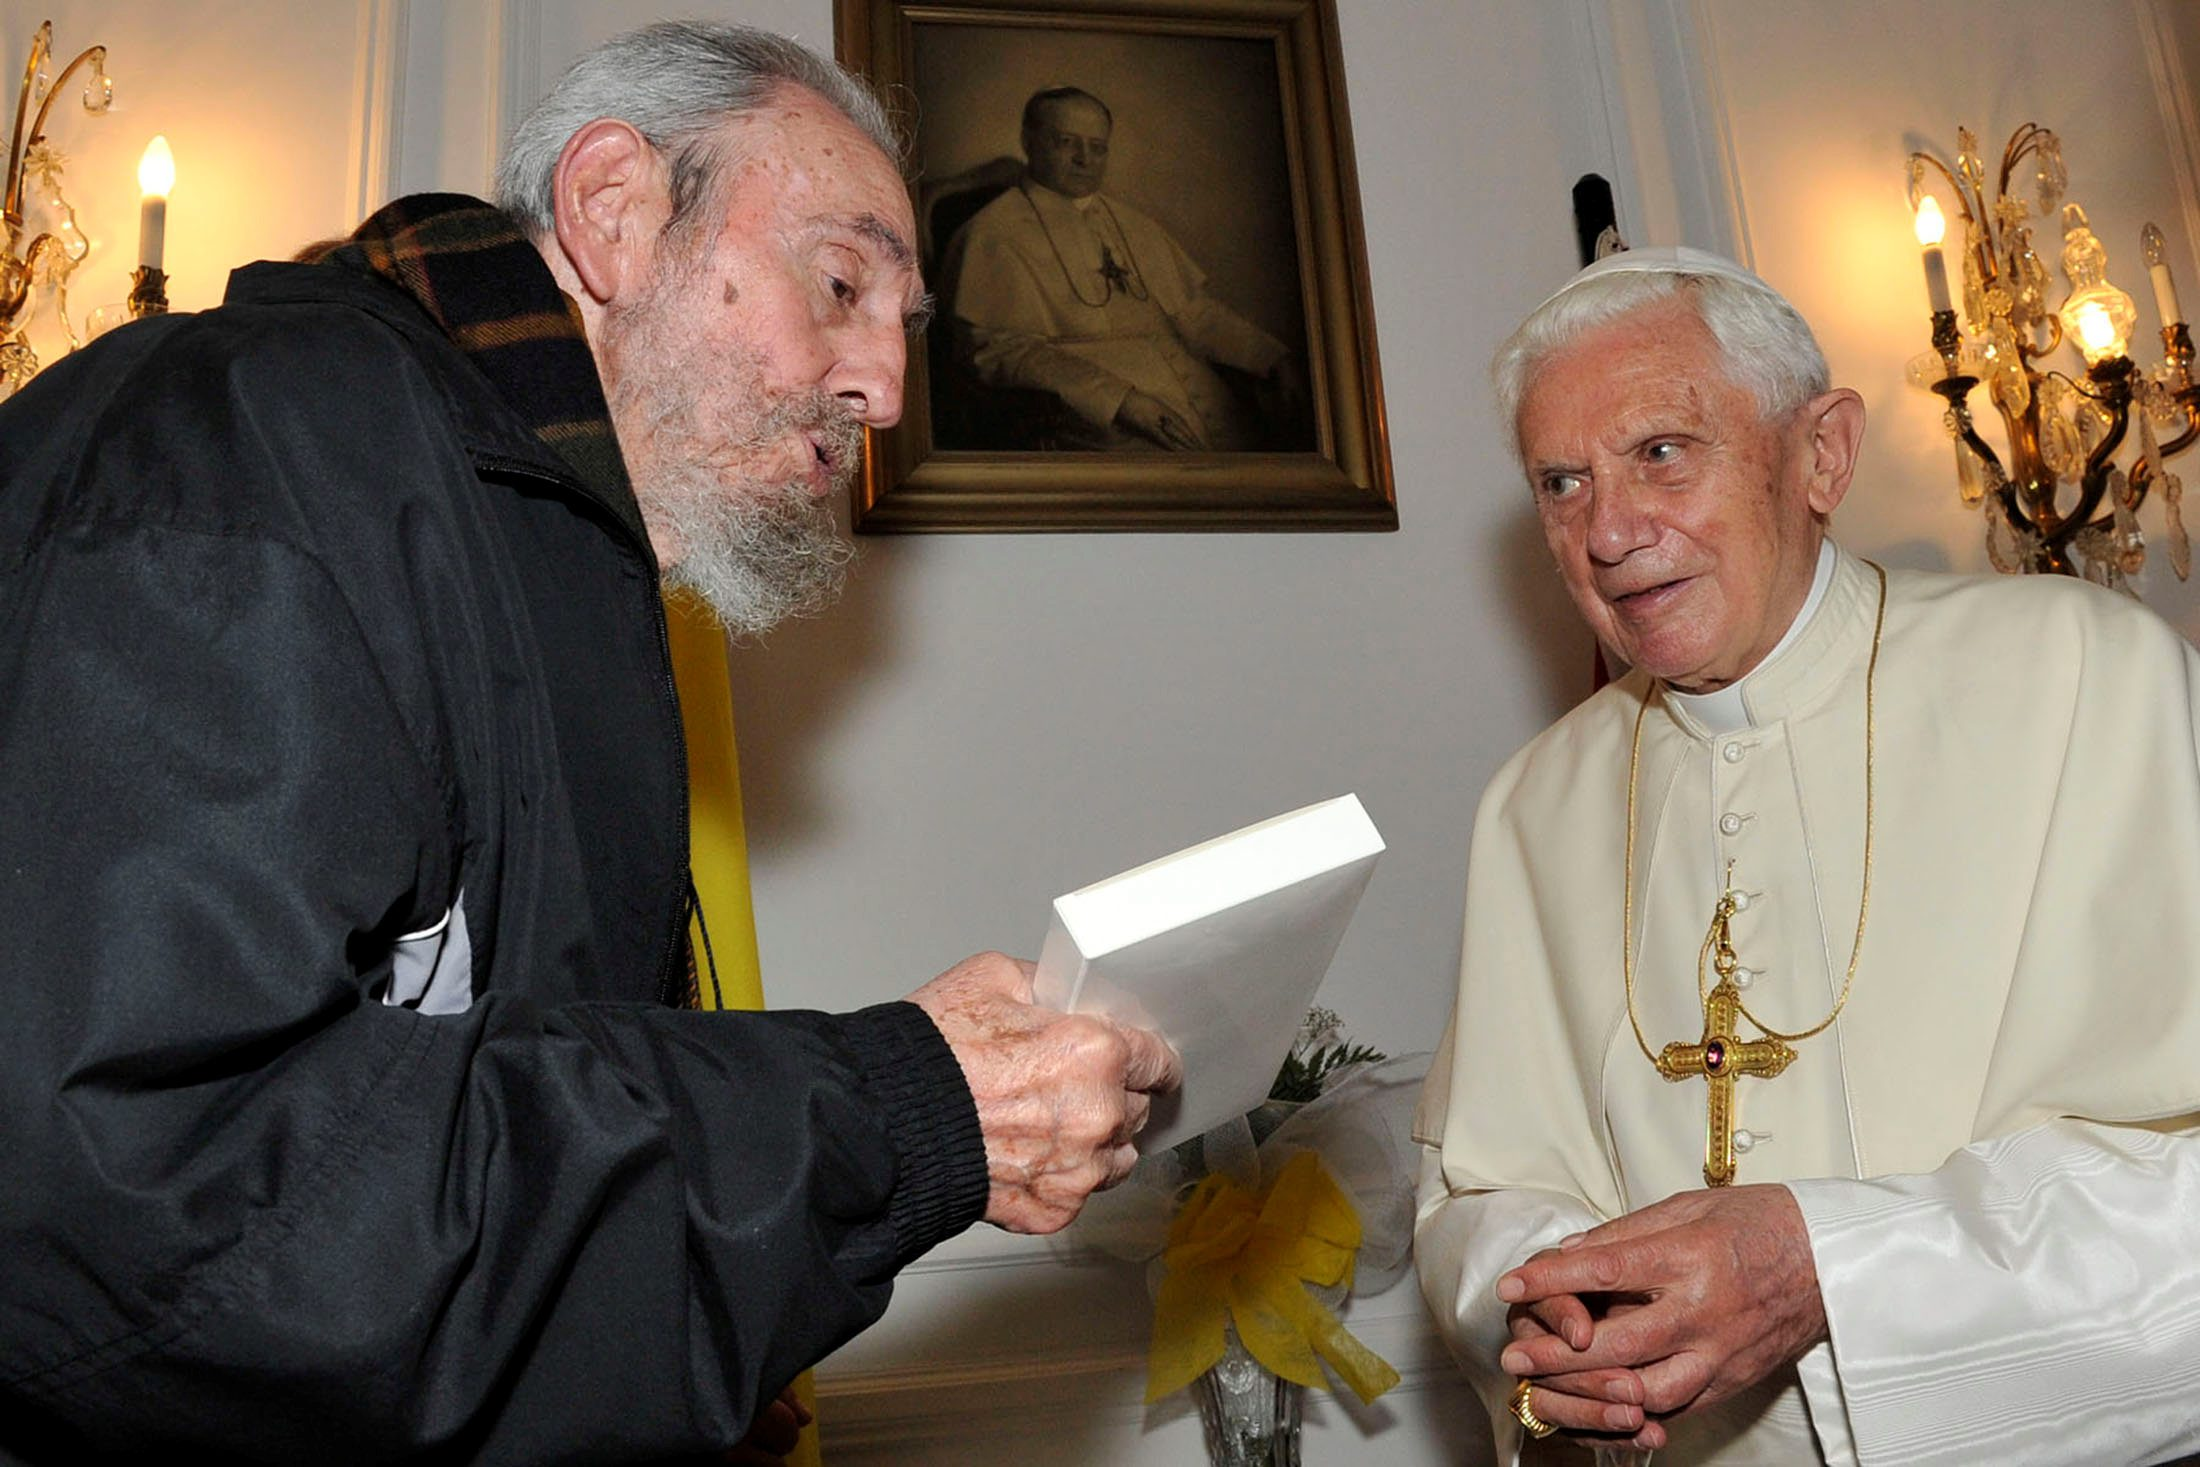 Pope Benedict XVI meets former Cuban leader Fidel Castro in Havana in this March 28, 2012 file photo. REUTERS/Alex Castro-Cubadebate/Handout/File Photo     ATTENTION EDITORS - THIS IMAGE WAS PROVIDED BY A THIRD PARTY. EDITORIAL USE ONLY.